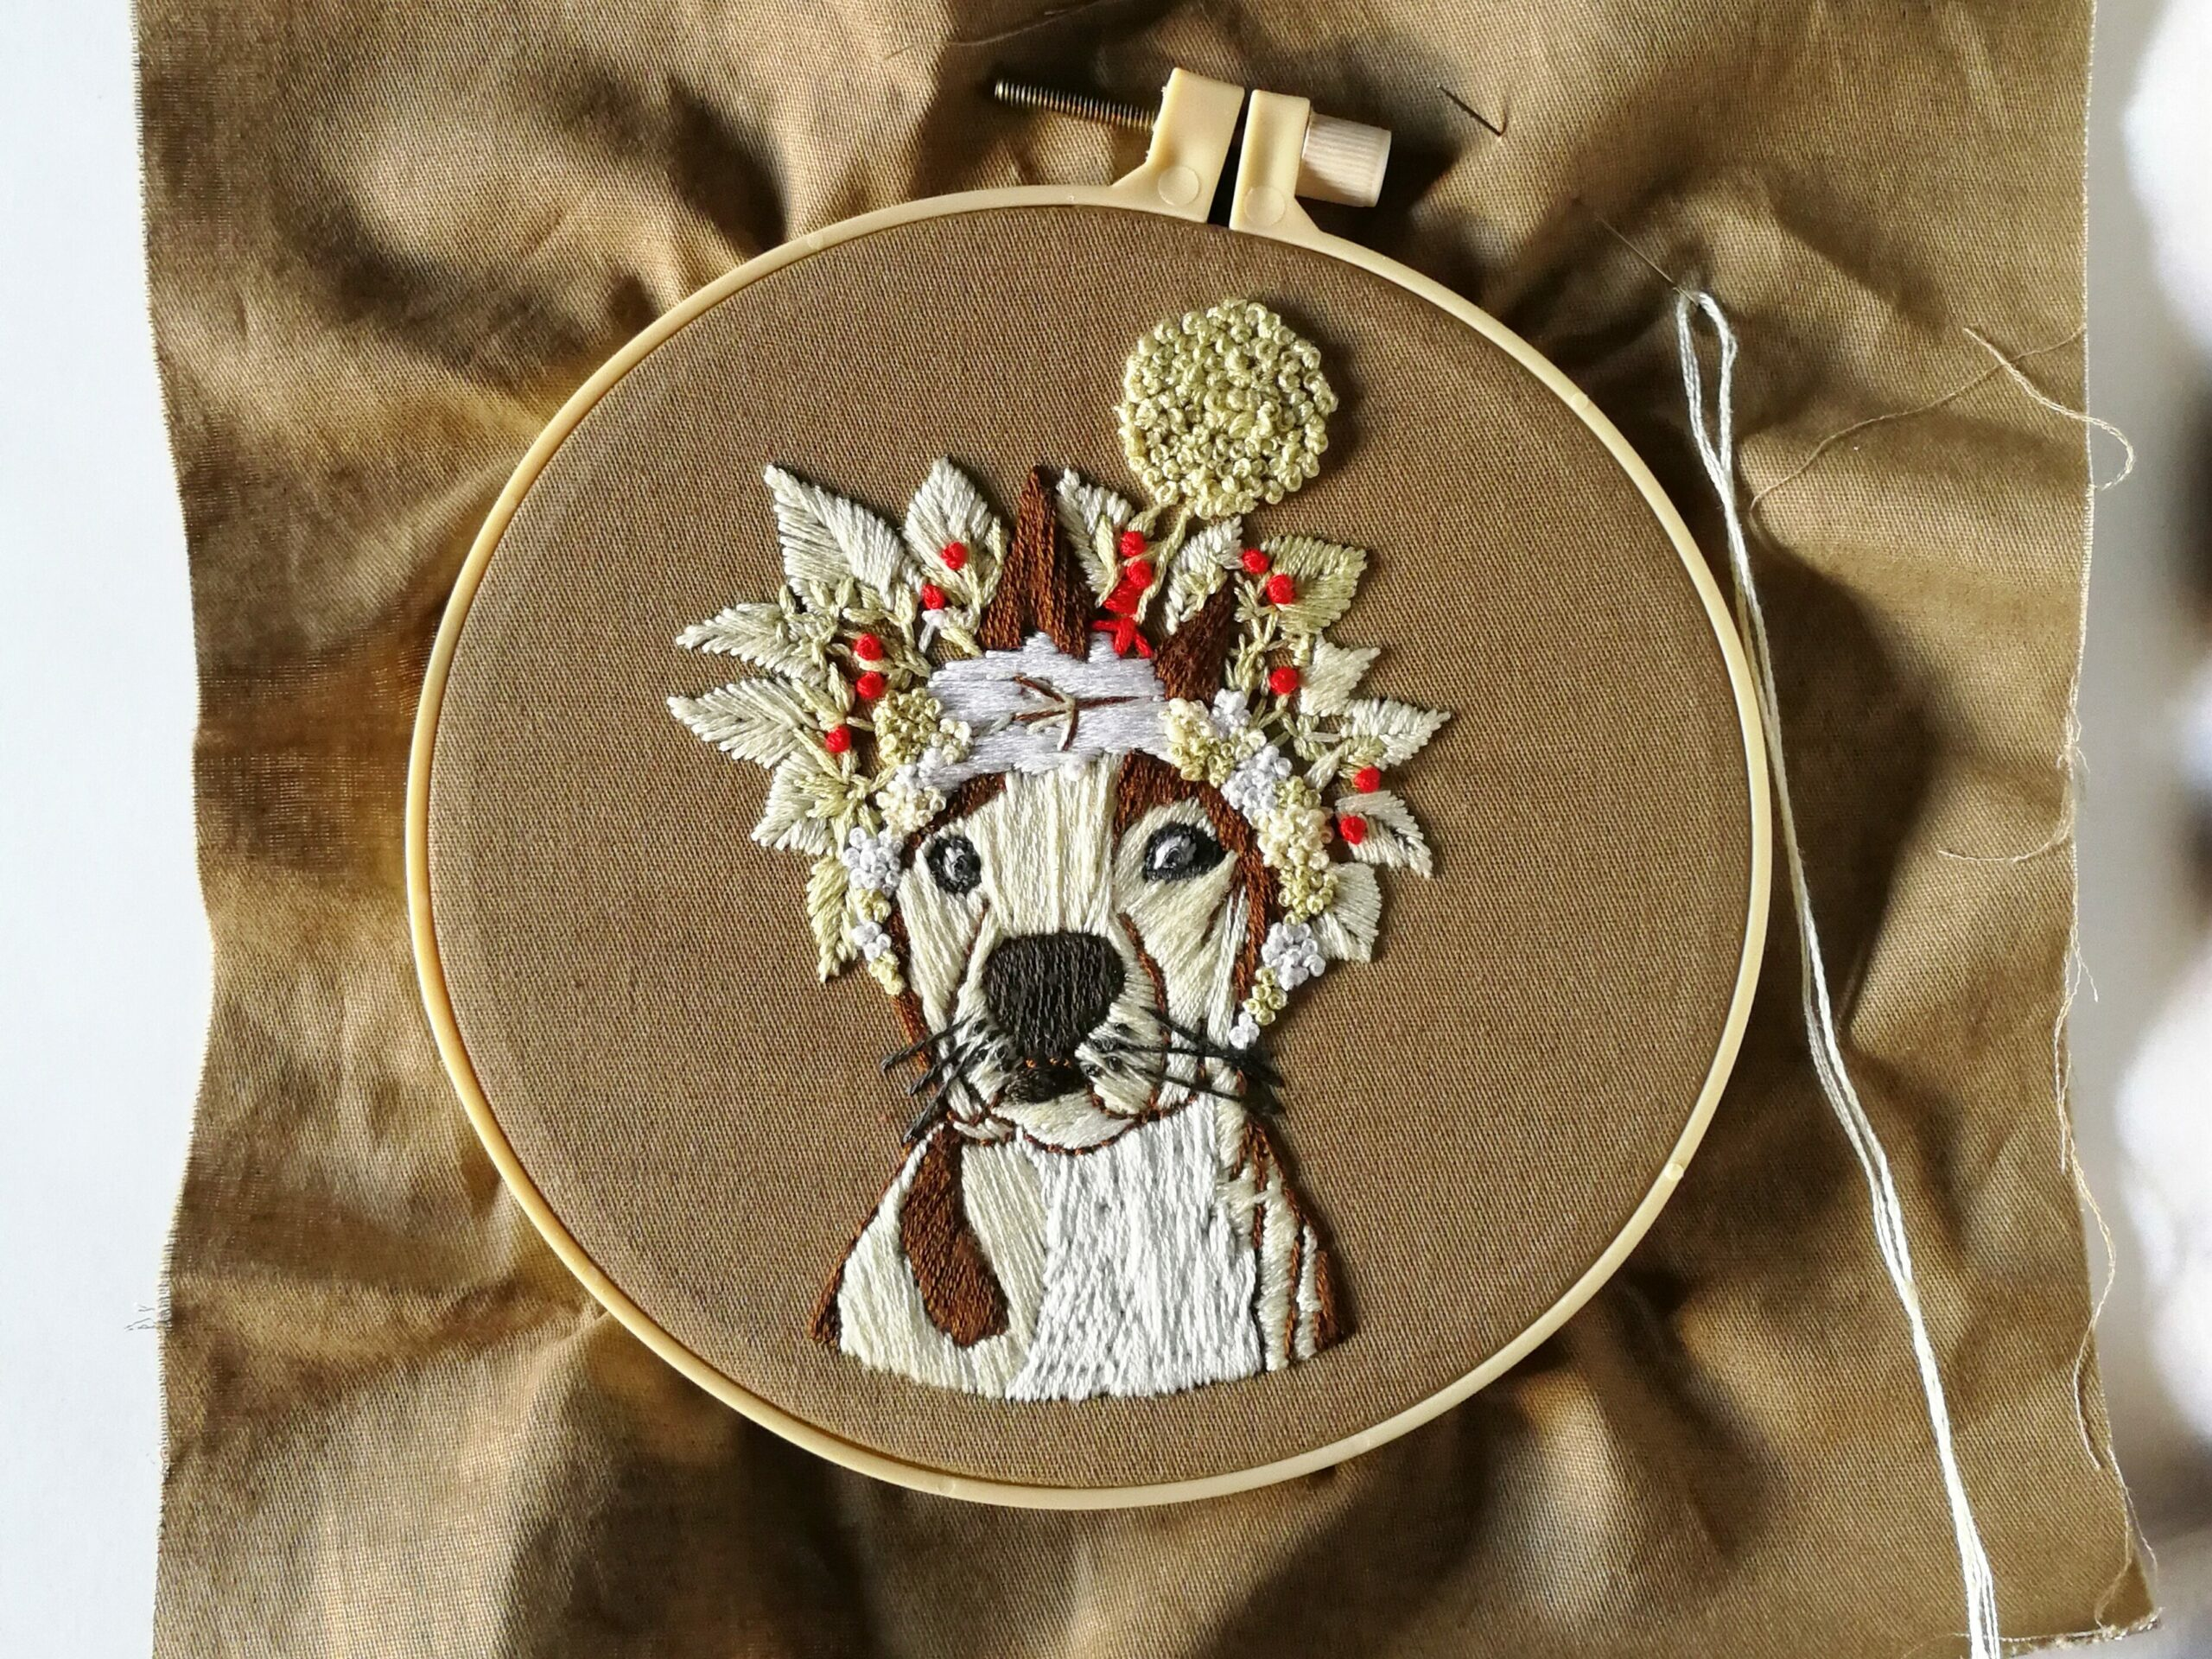 how to frame embroidery - first finish embroidery design